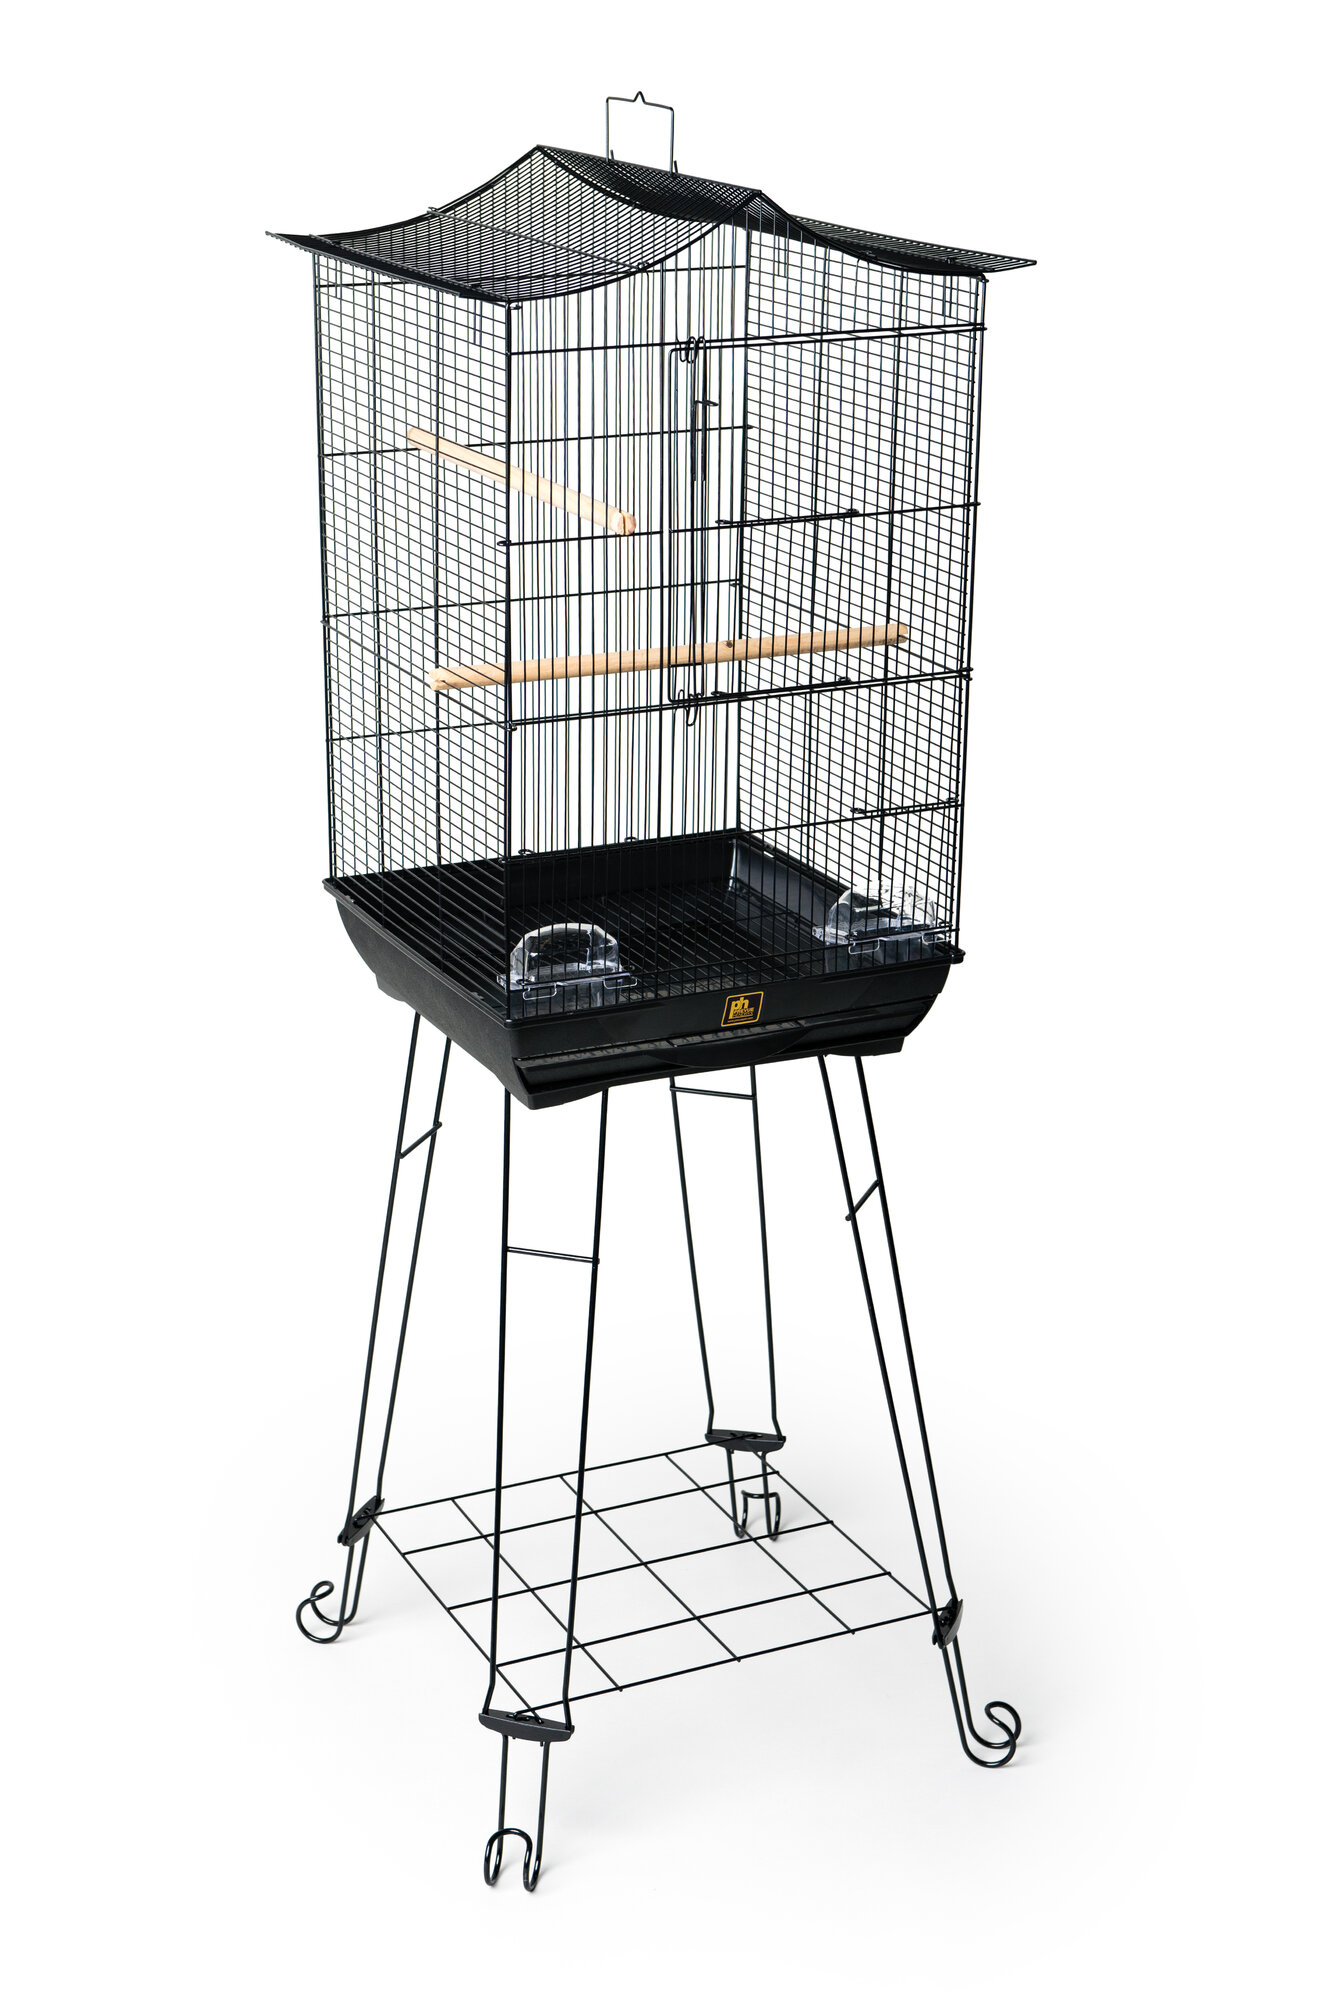 prevue hendryx crown roof parakeet cage with stand ebay. Black Bedroom Furniture Sets. Home Design Ideas